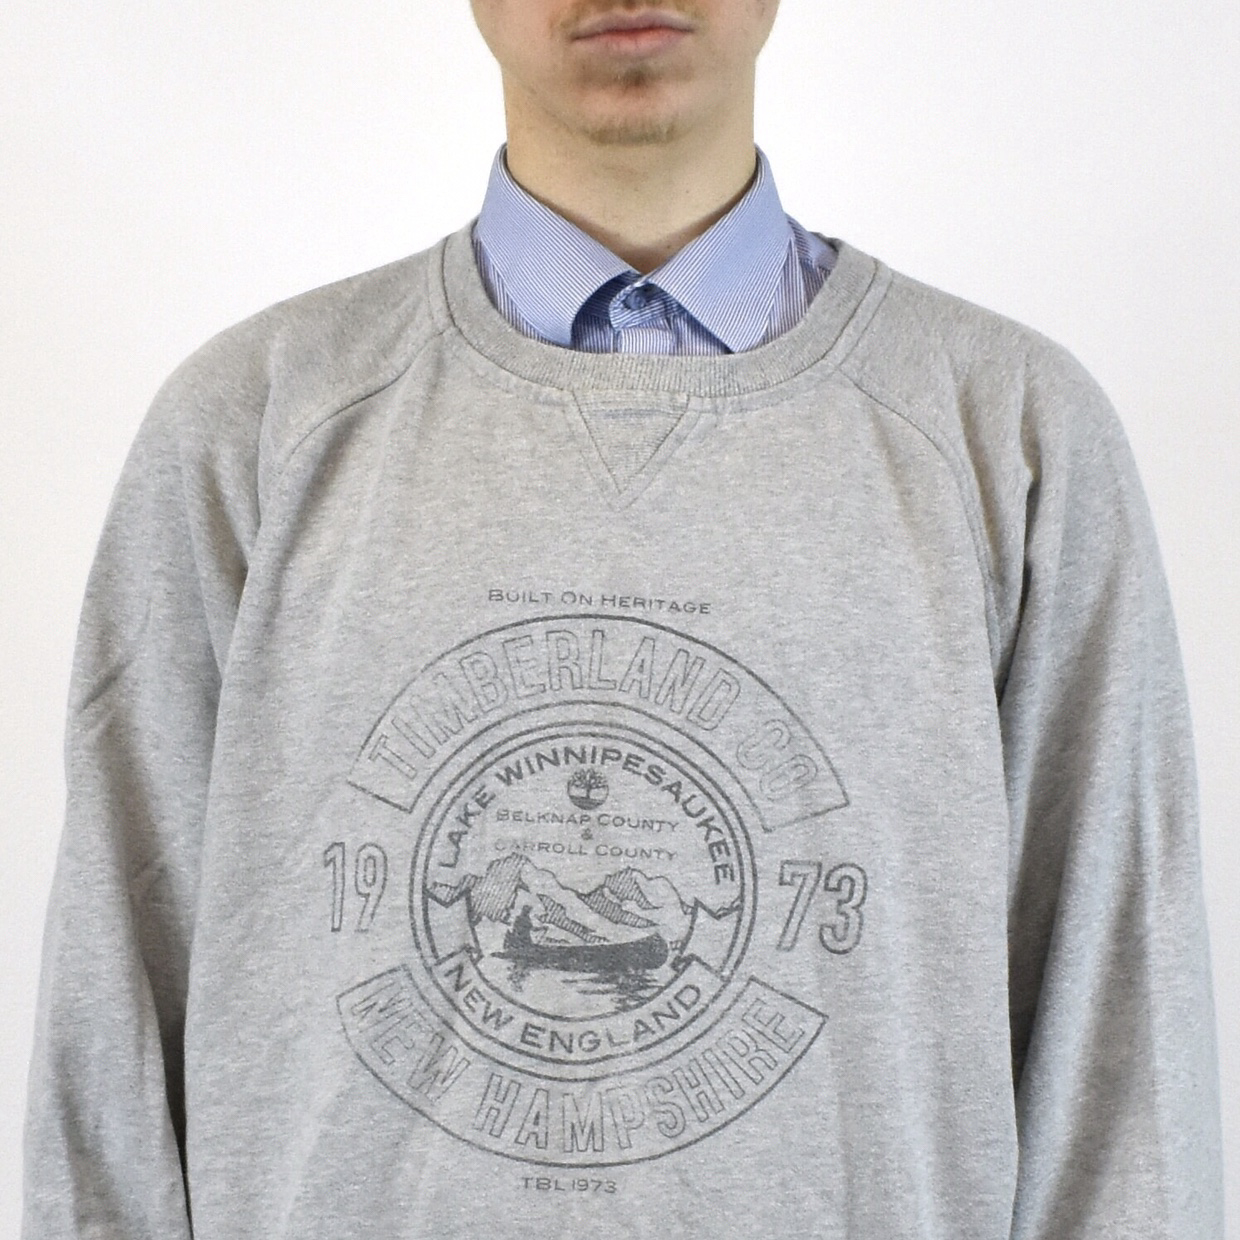 4255480d Unisex Vintage Timberland sweatshirt in gray has a cool design on the ...